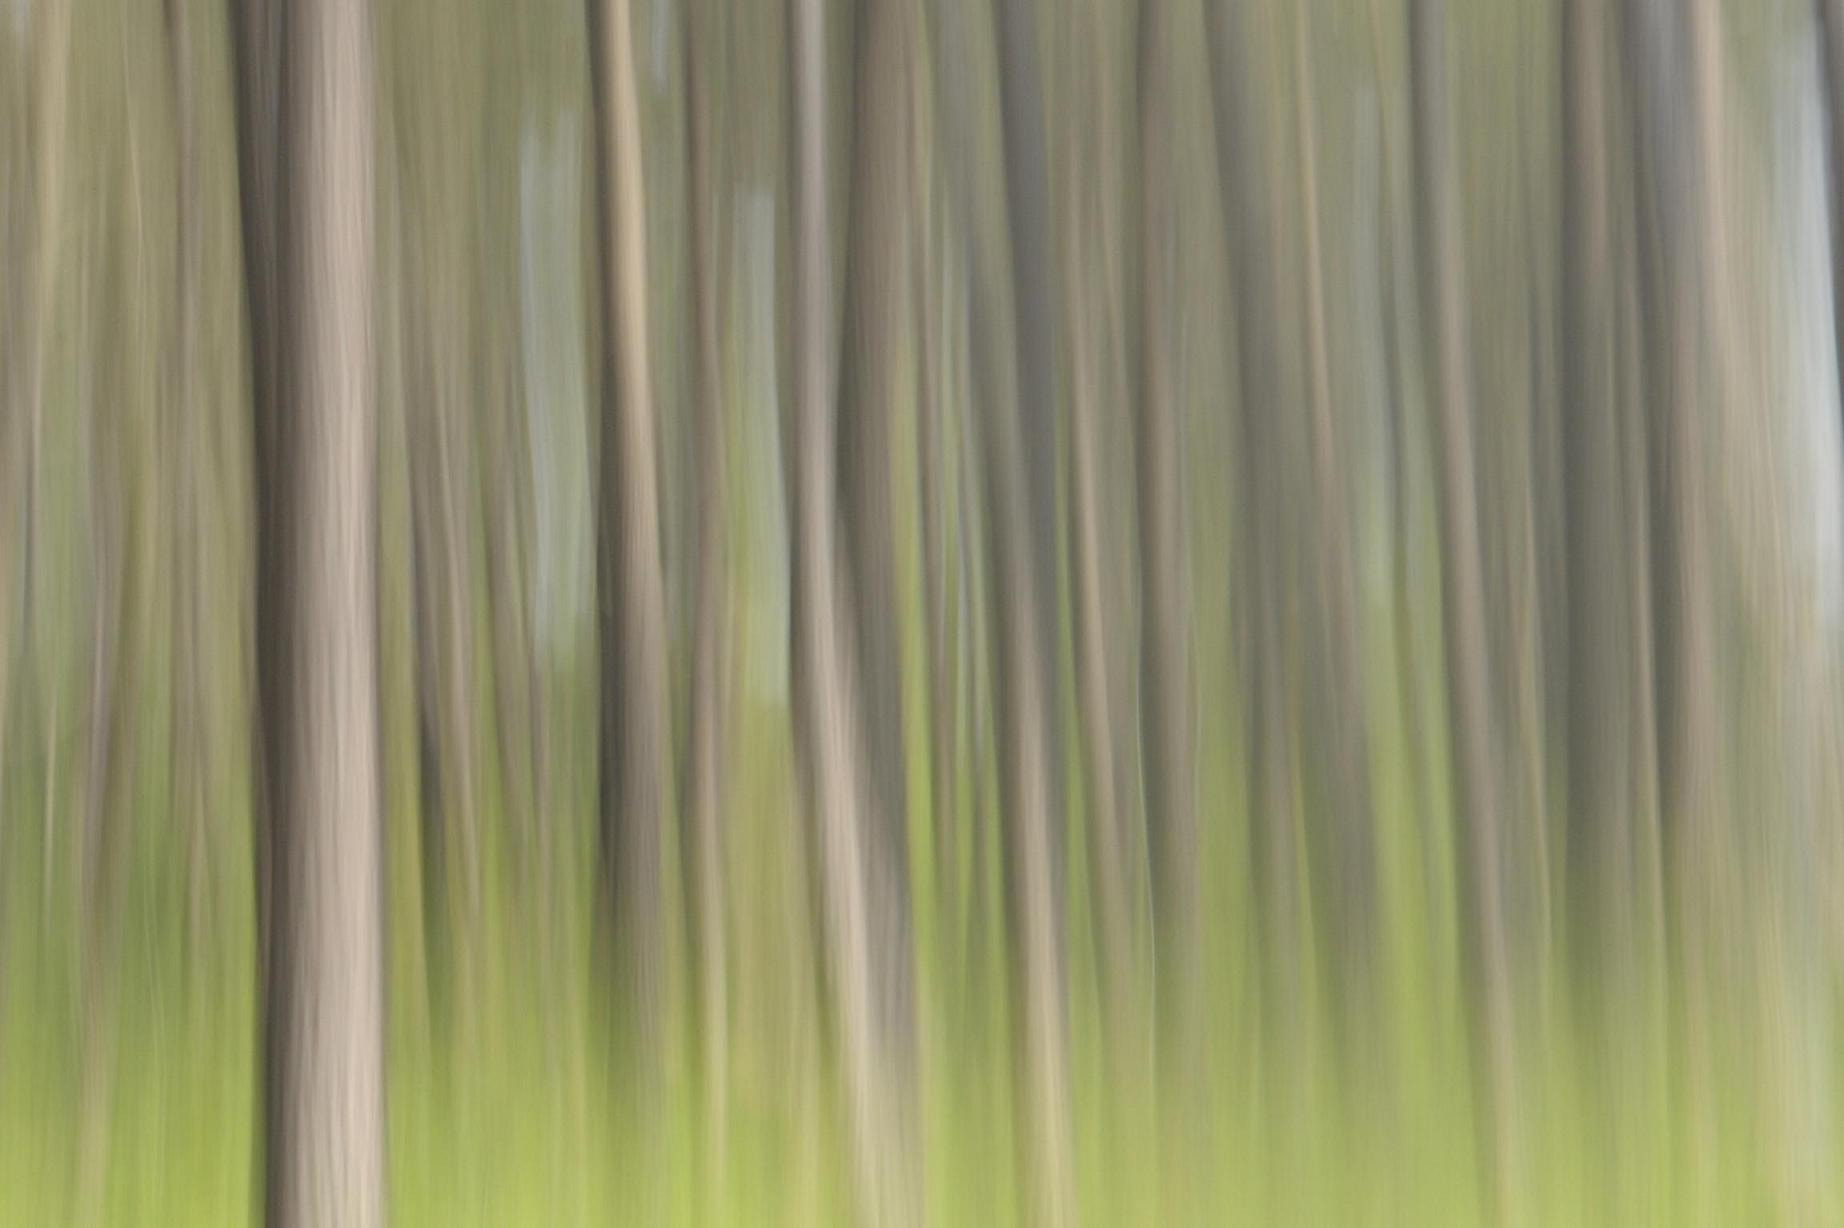 Photograph abstract forest by Laurent Dumas on 500px